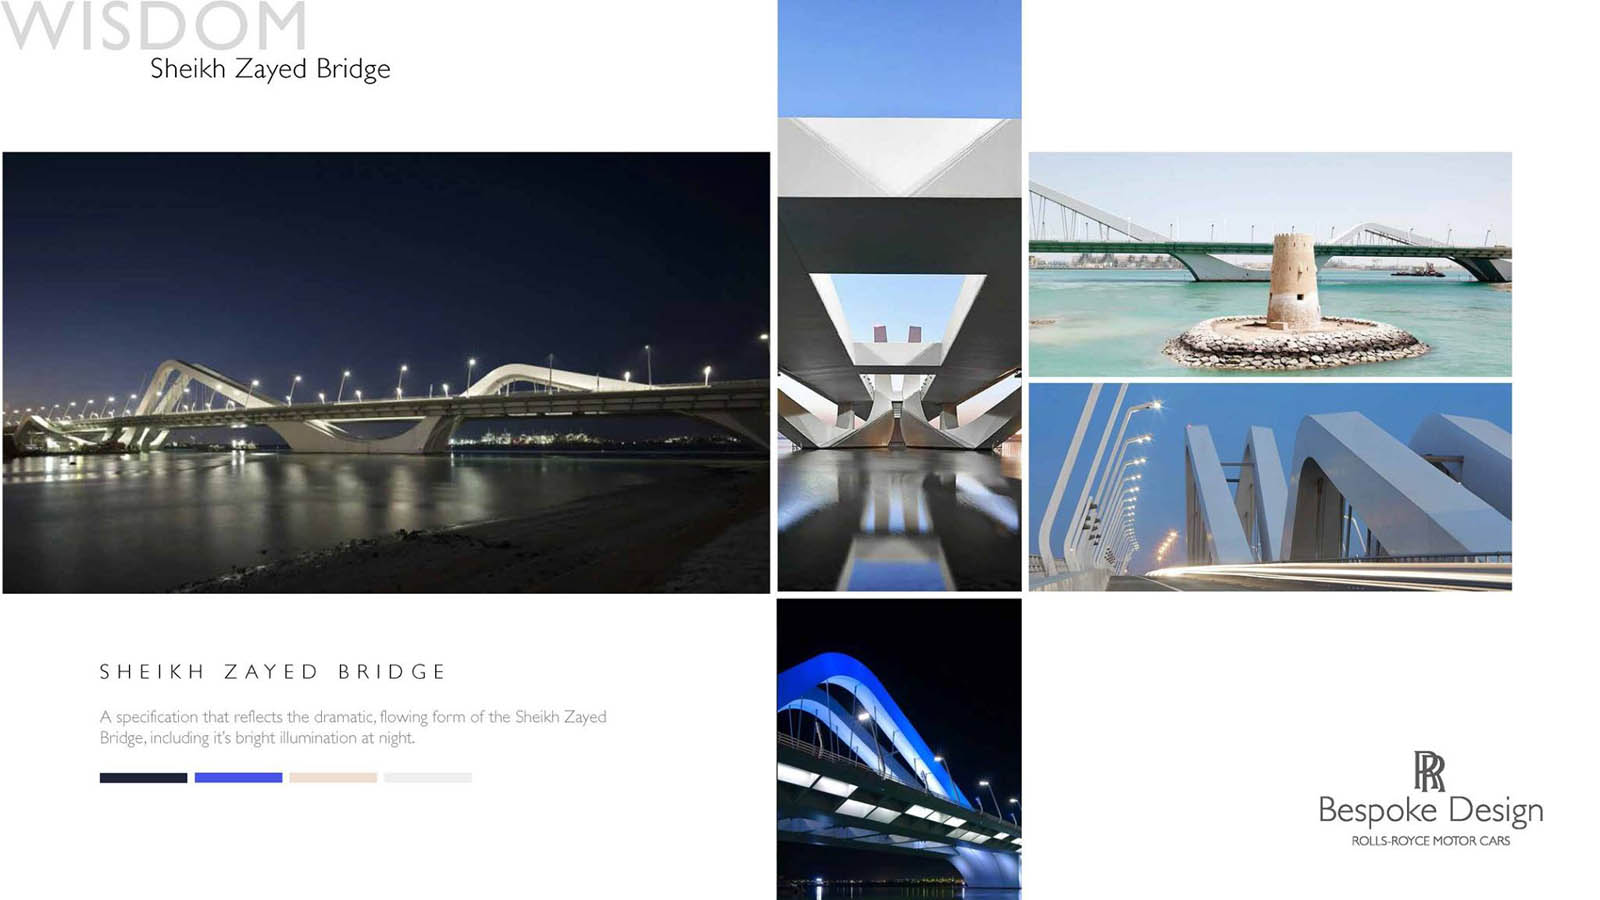 rolls-royce-Wraith-inspired-by-Sheikh-Zayed-Bridge-09